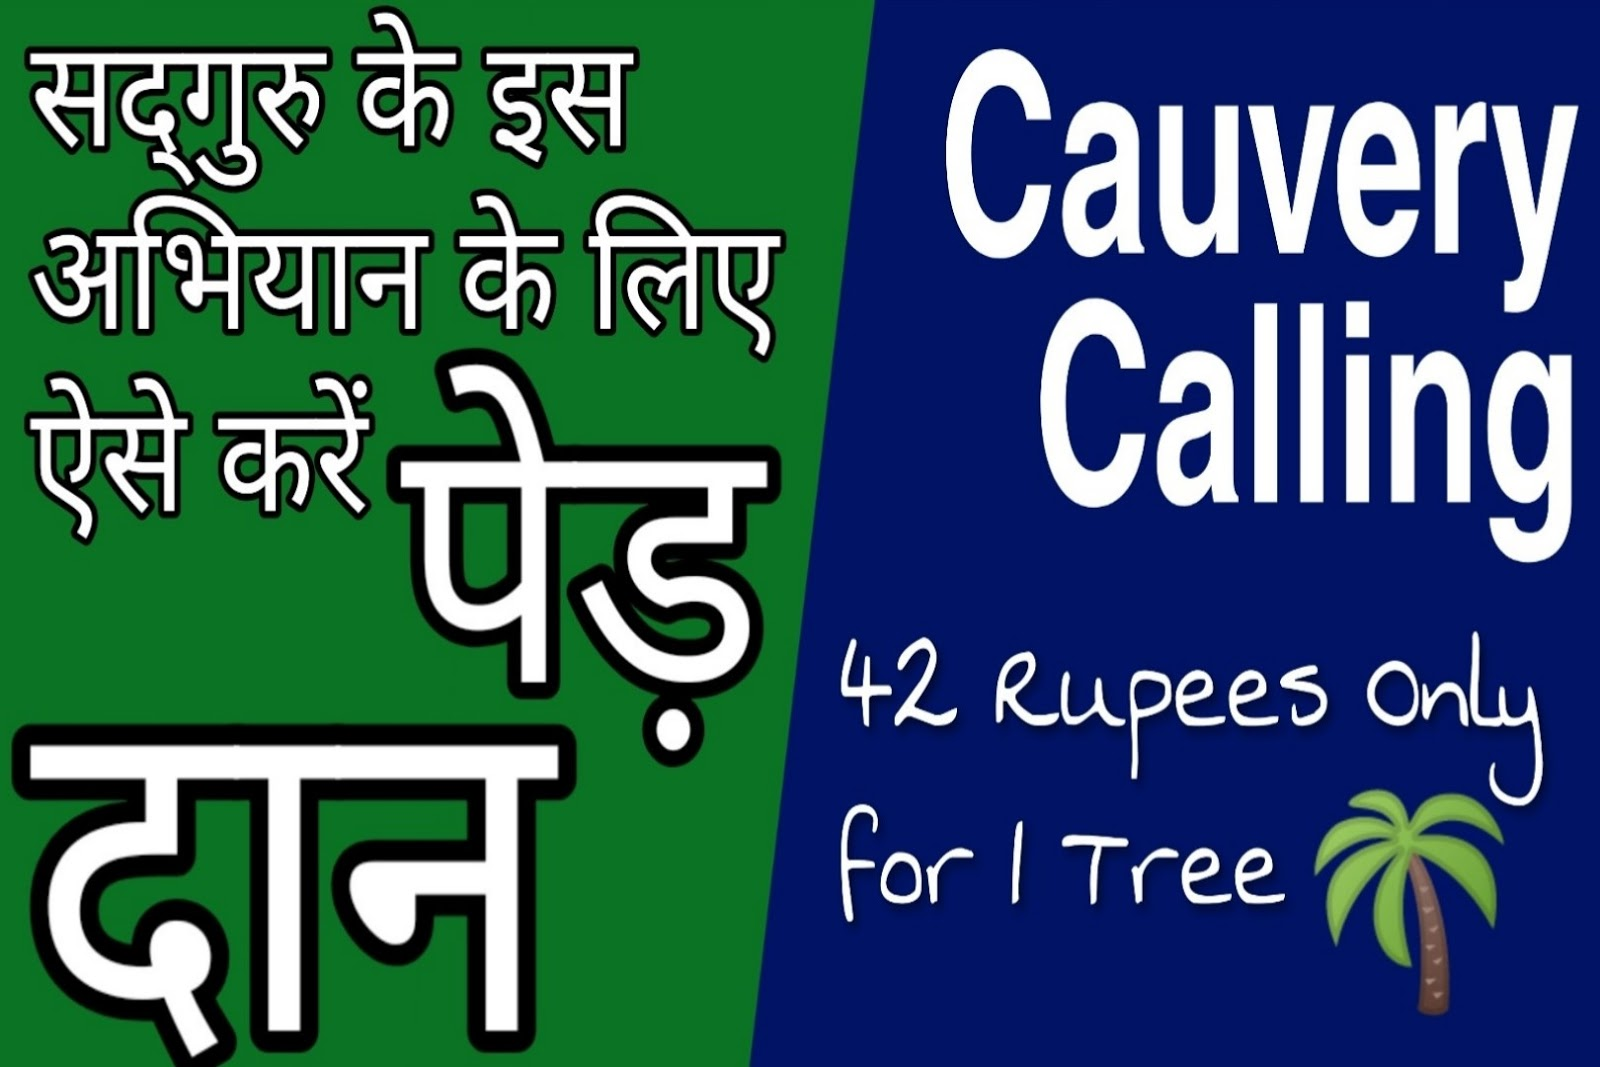 Steps to Donate Trees for Cauvery Calling